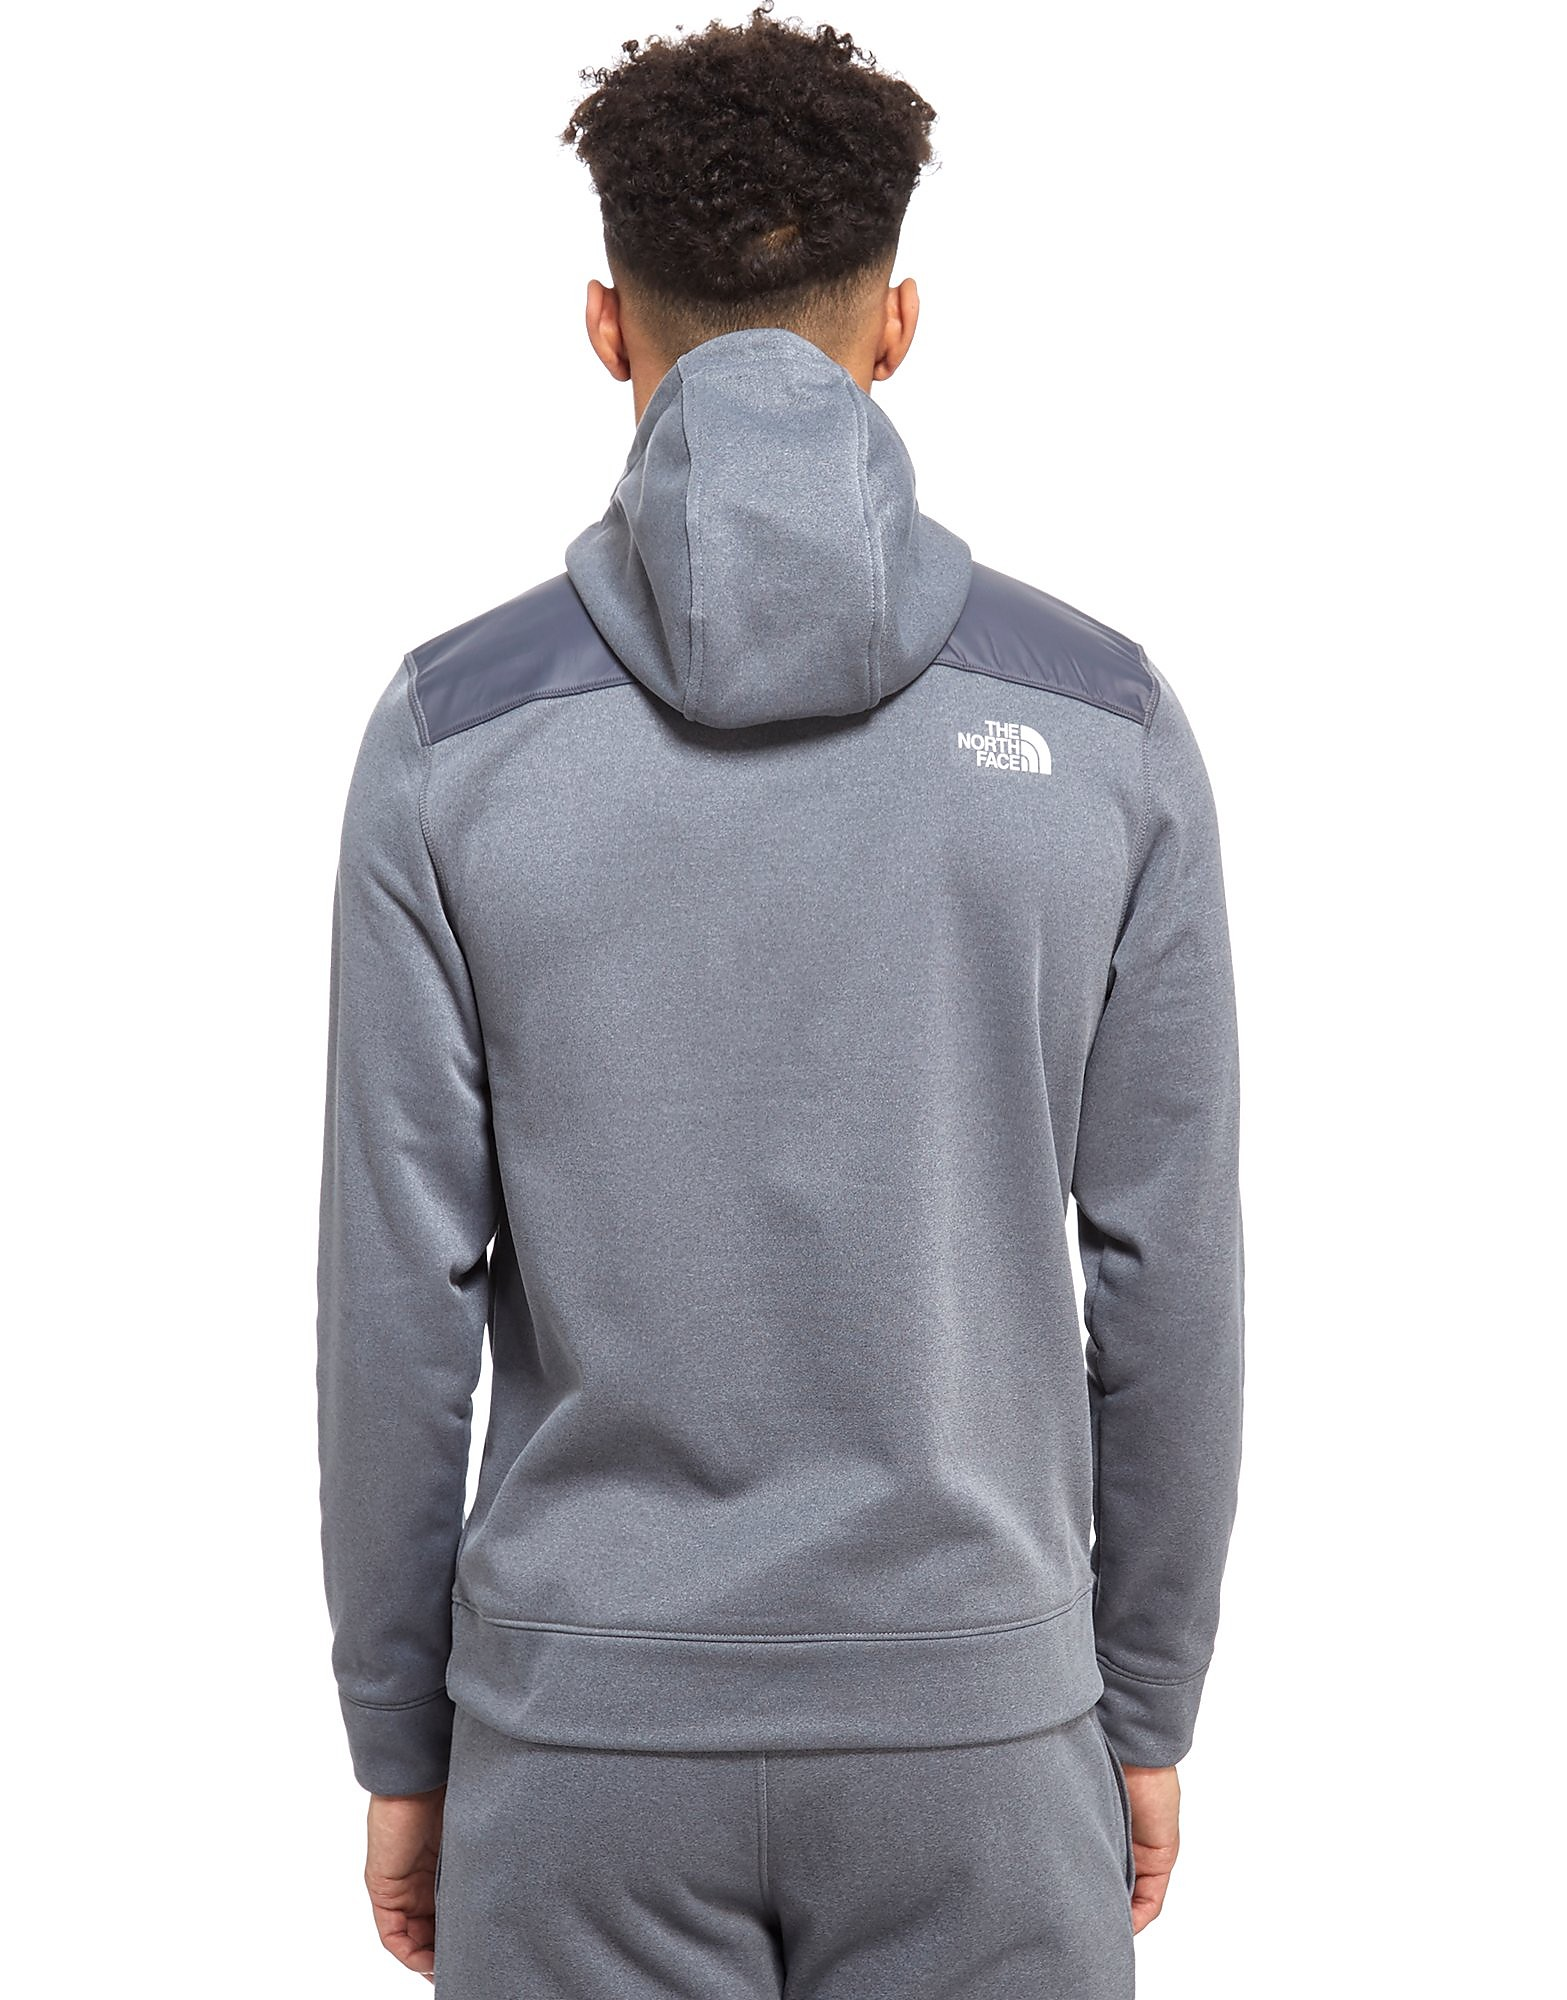 The North Face Mittellegi 1/4 Zip Hoodie